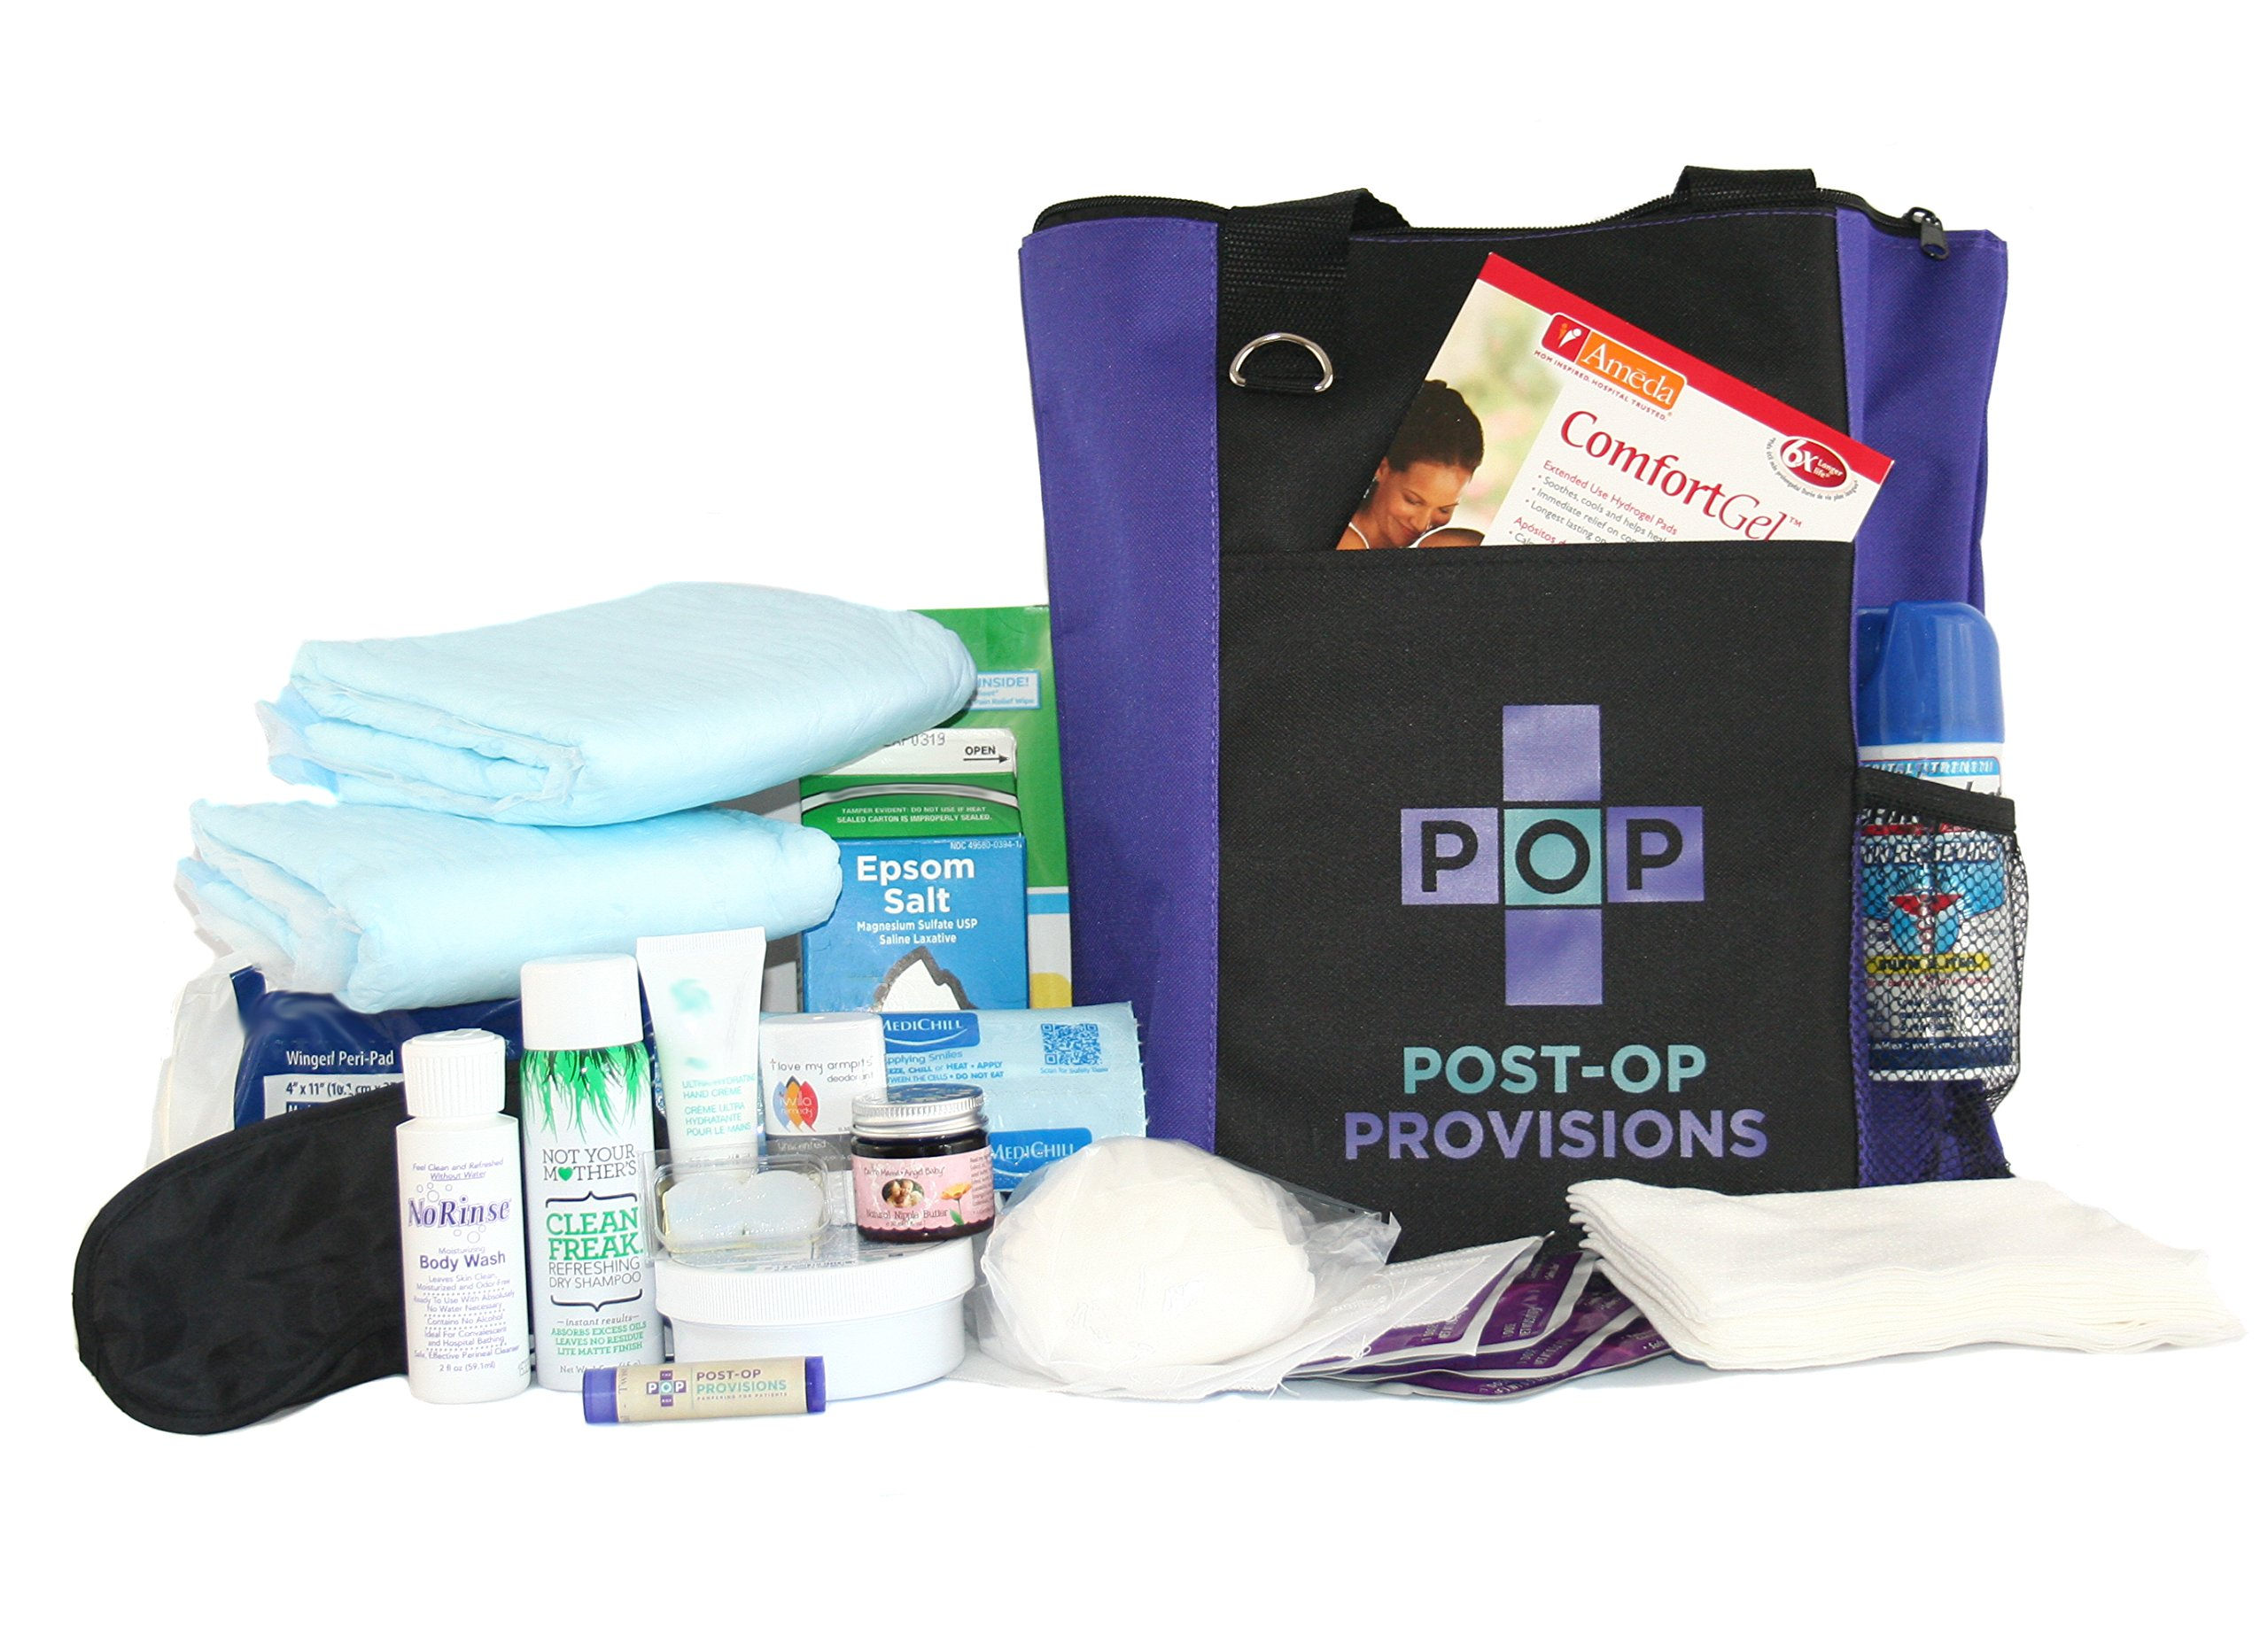 Mom Bag by Post-Op Provisions by Post-Op Provisions